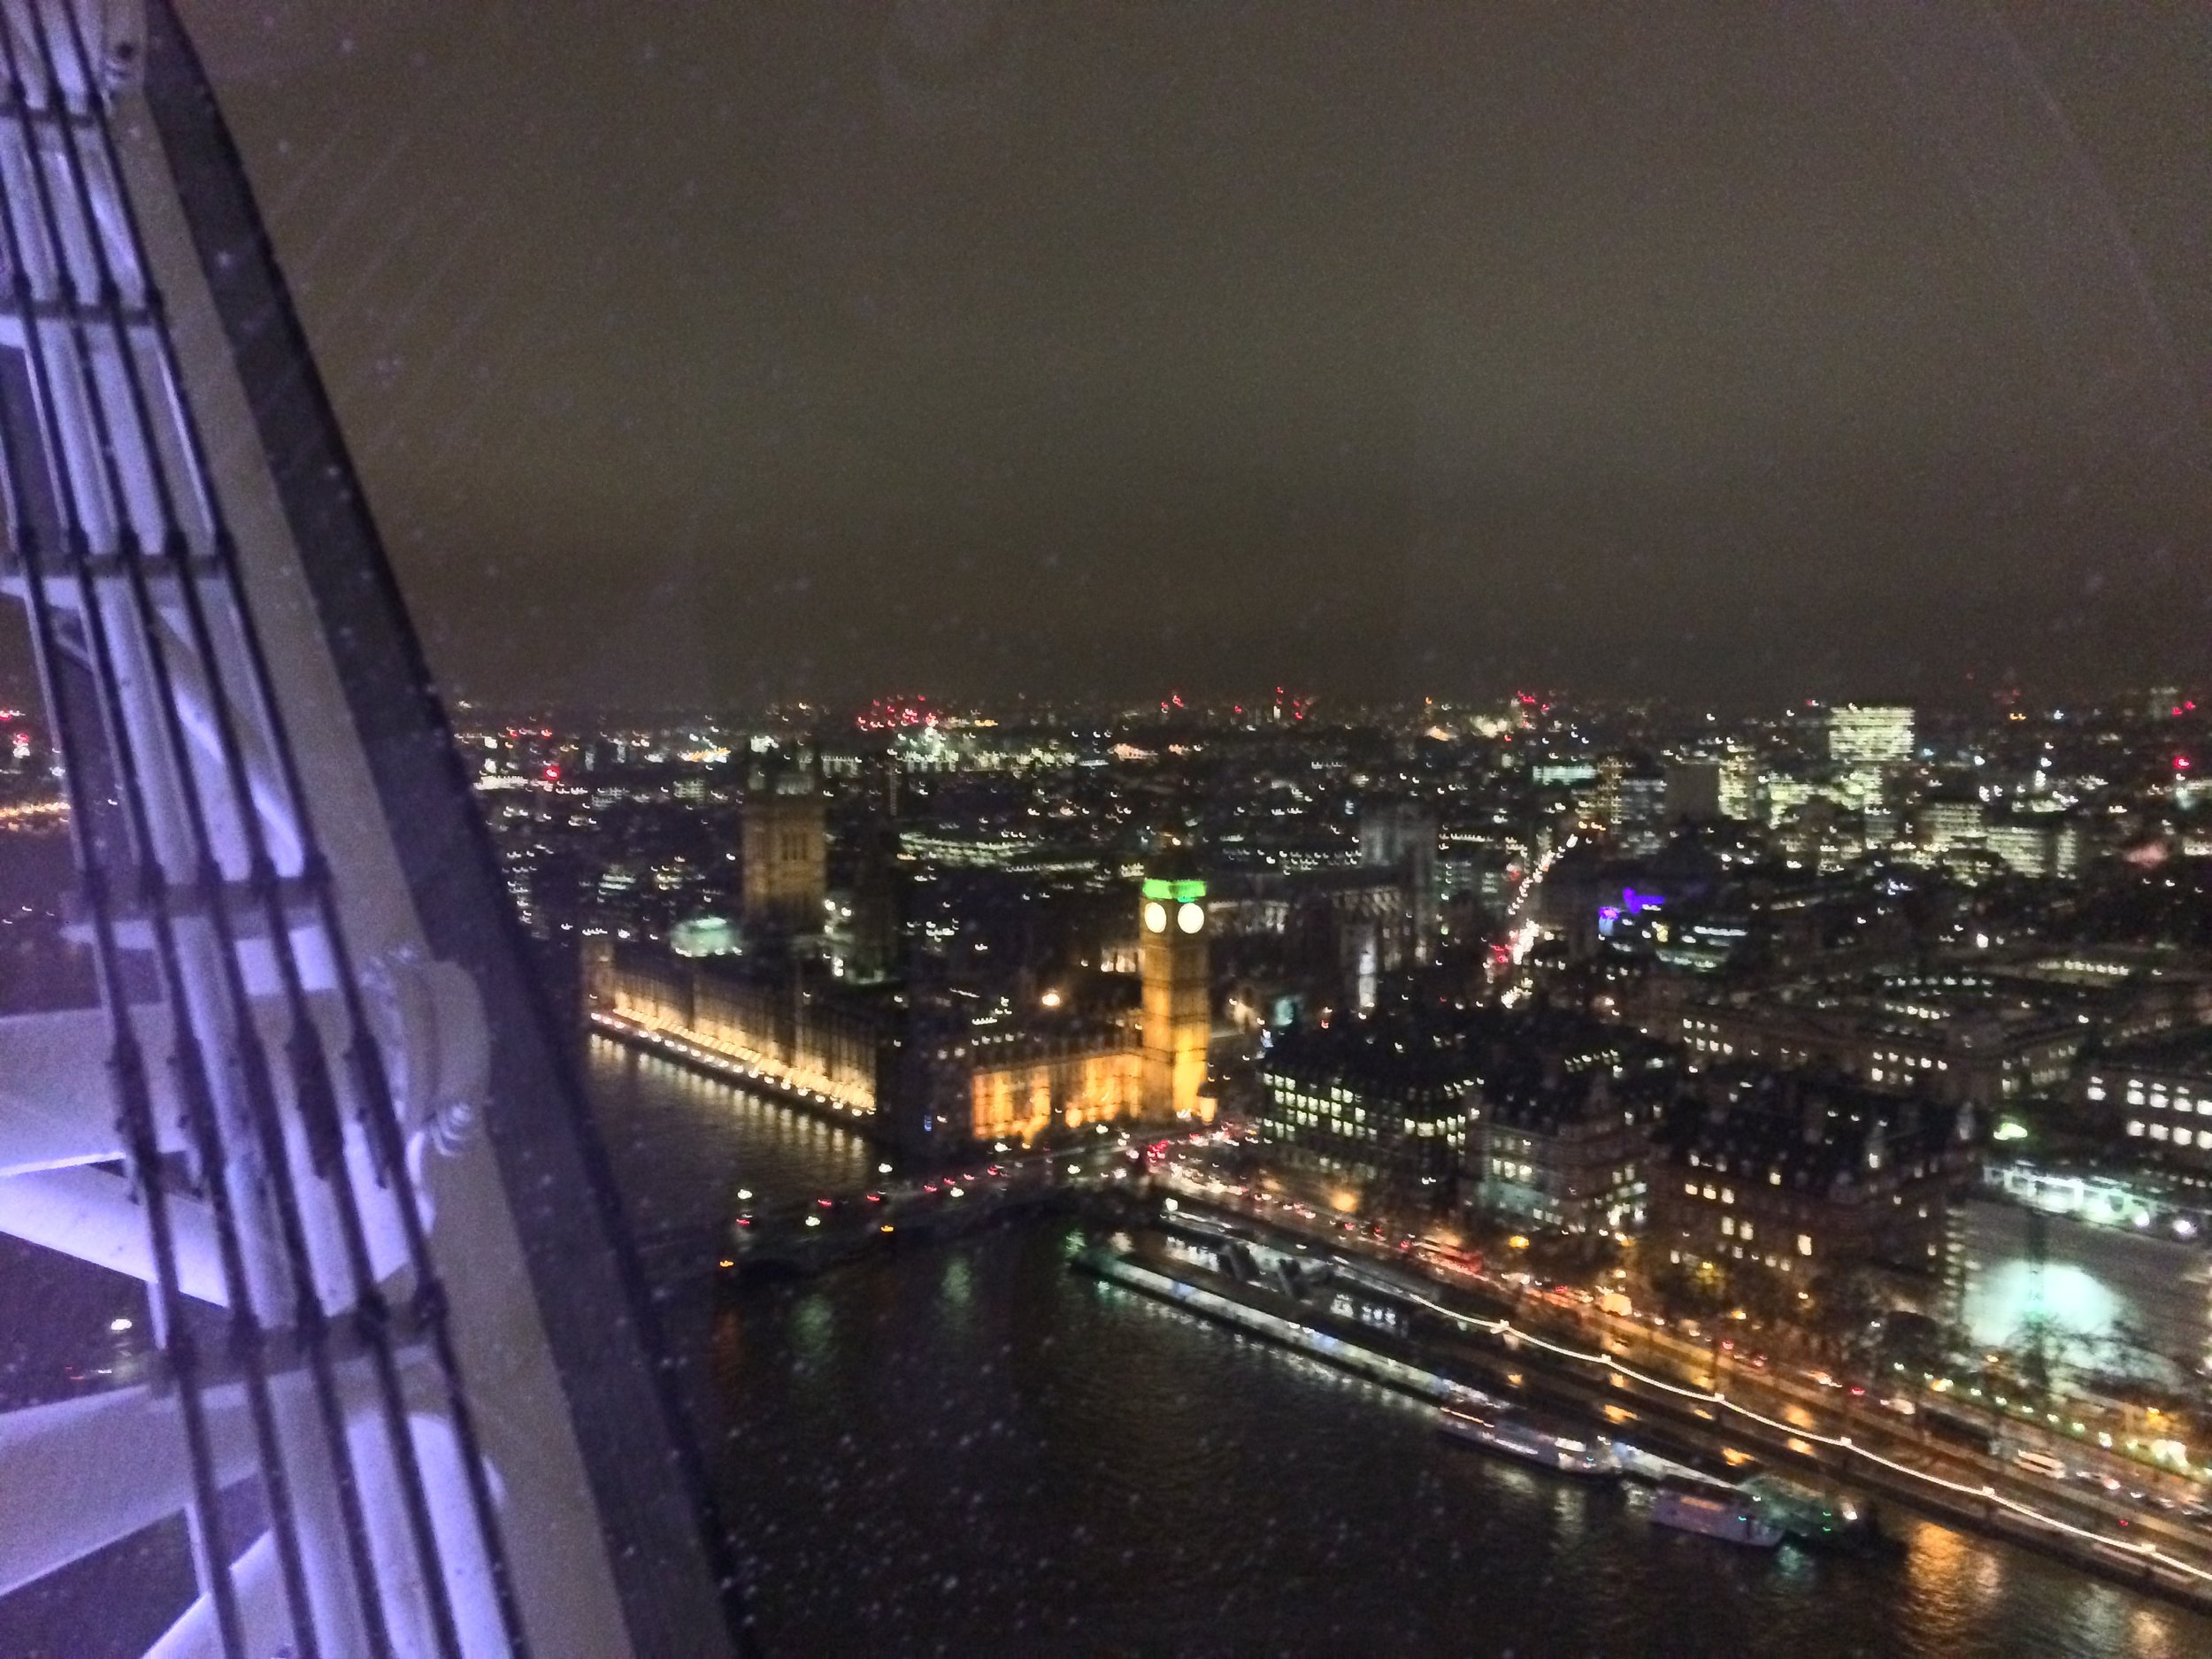 """While there is not a """"bad"""" time to ride the Eye, a nighttime spin allows for different views and perspectives of the city."""